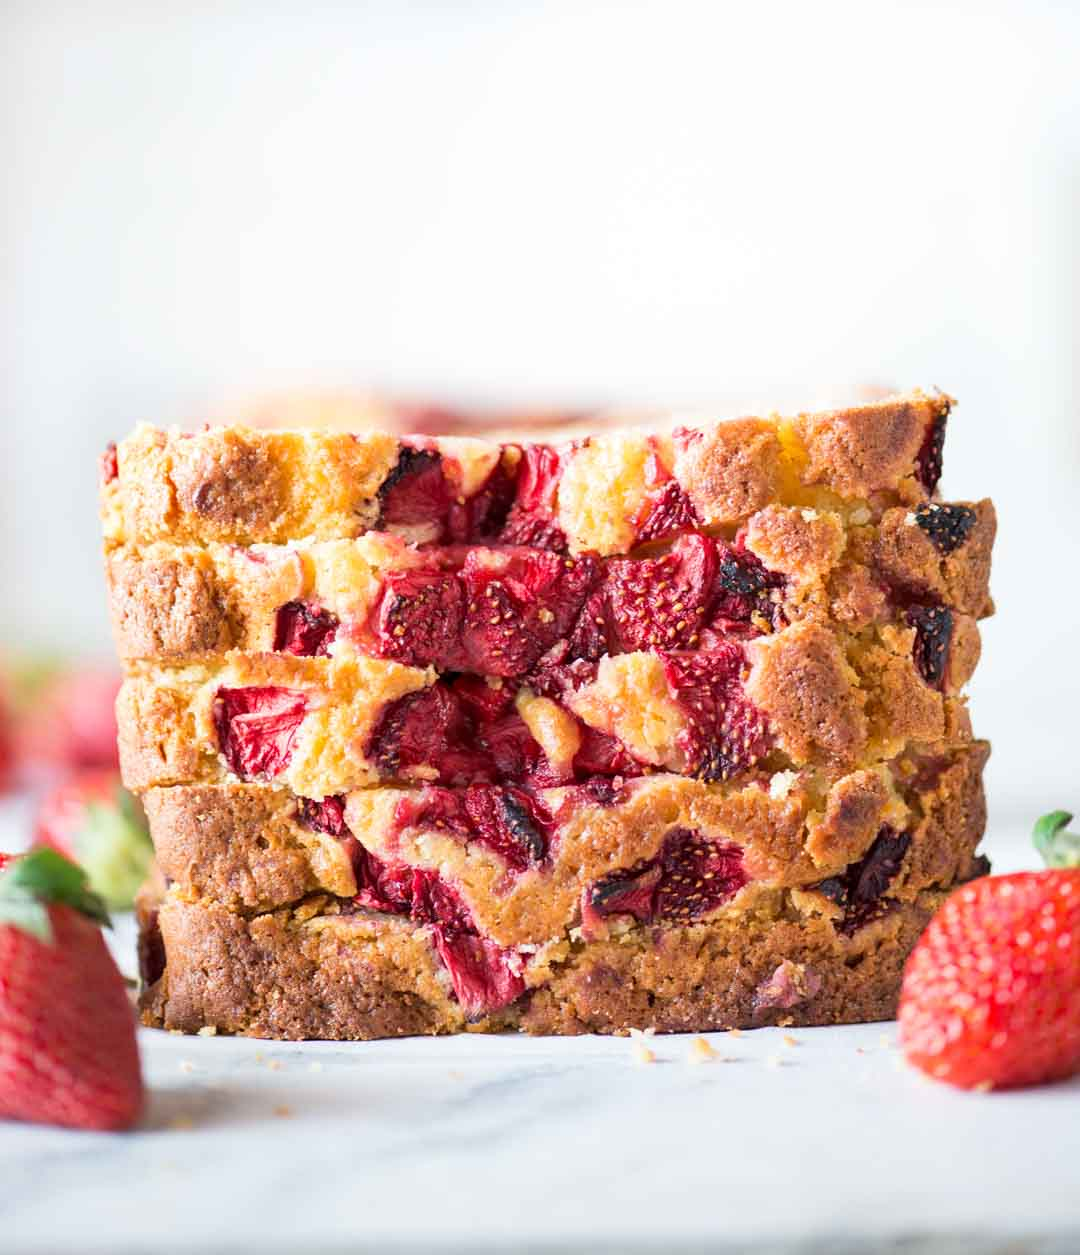 Strawberry Cake with loads of fresh strawberries is made from scratch with basic pantry staples. You will get to taste strawberry in every bite of this buttery, moist and delicious cake.